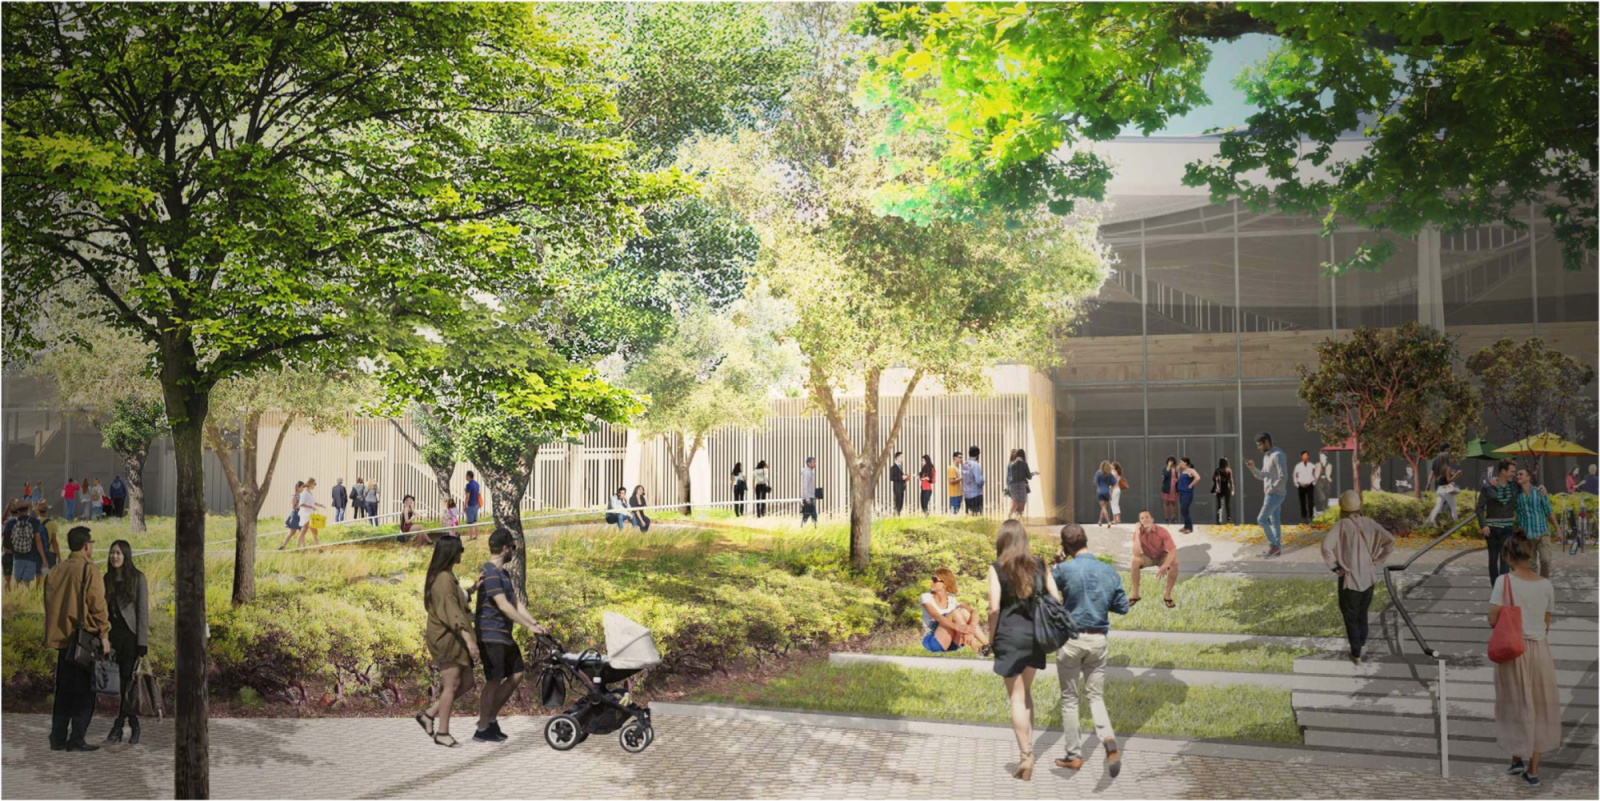 Google reveals images of its futuristic campus offices to rival